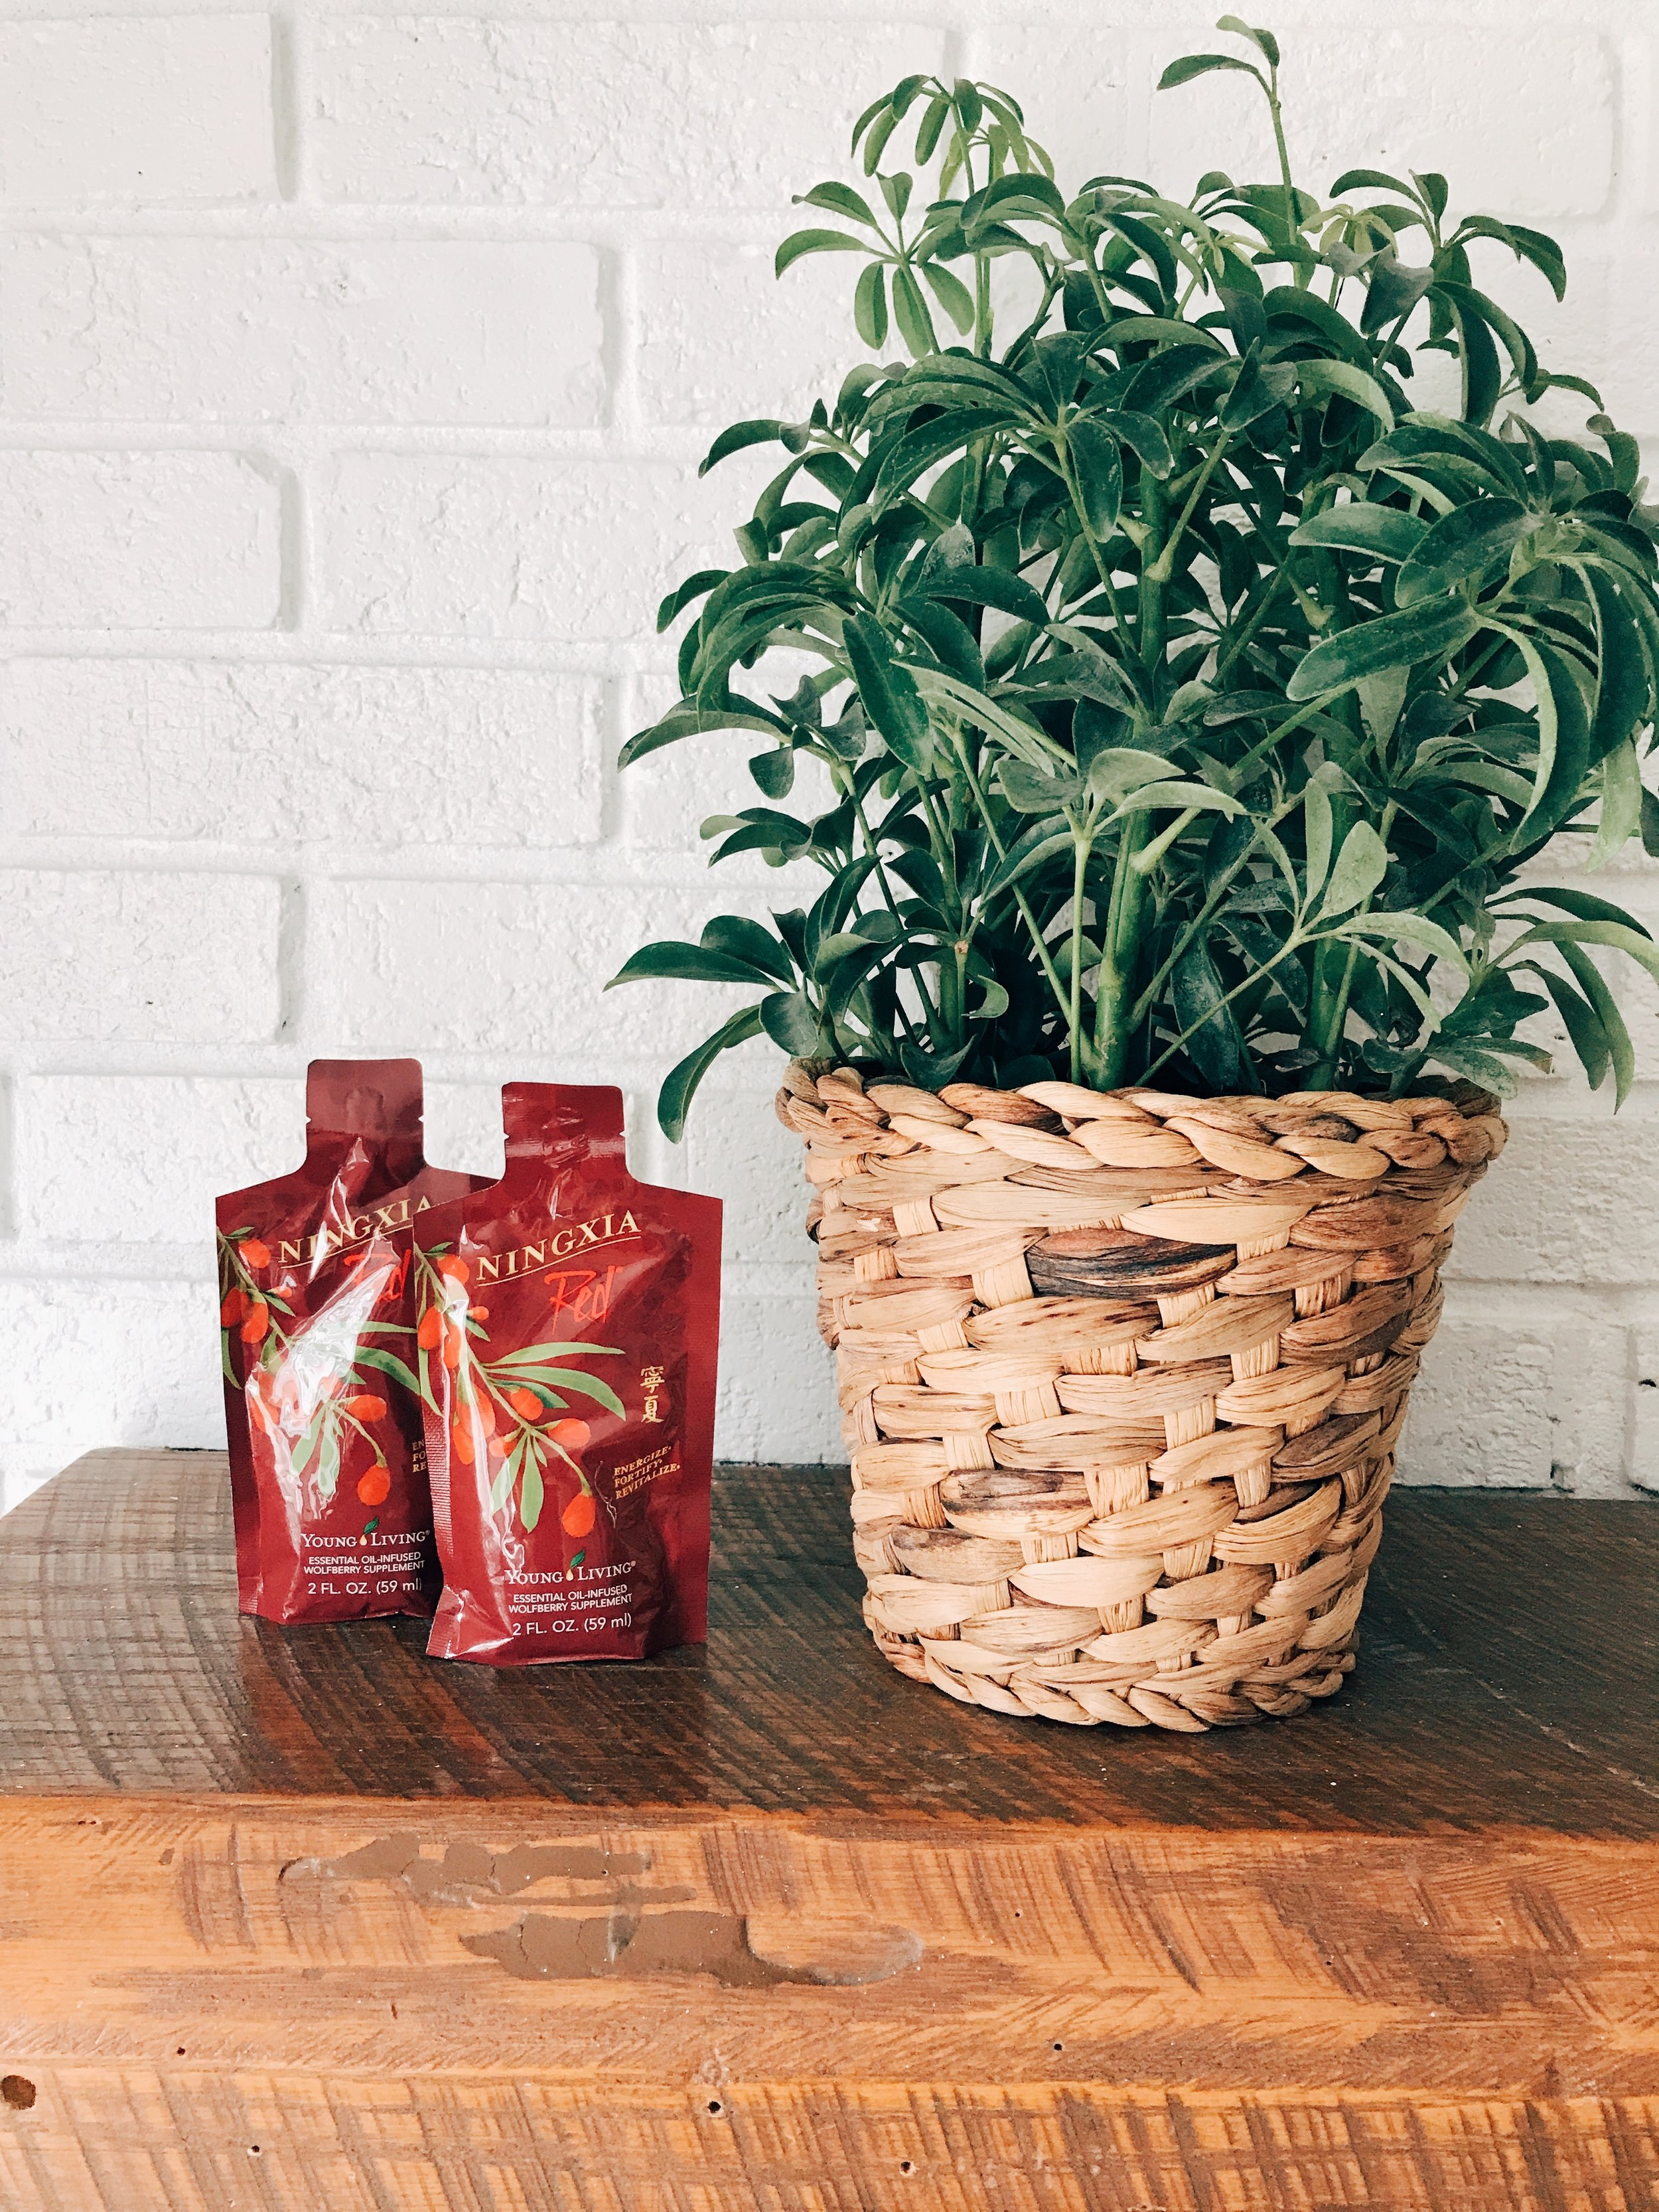 Have you tried Ningxia Red yet? It is packed with antioxidants and so many fruits and veggies! It would be impossible to eat this on your own.